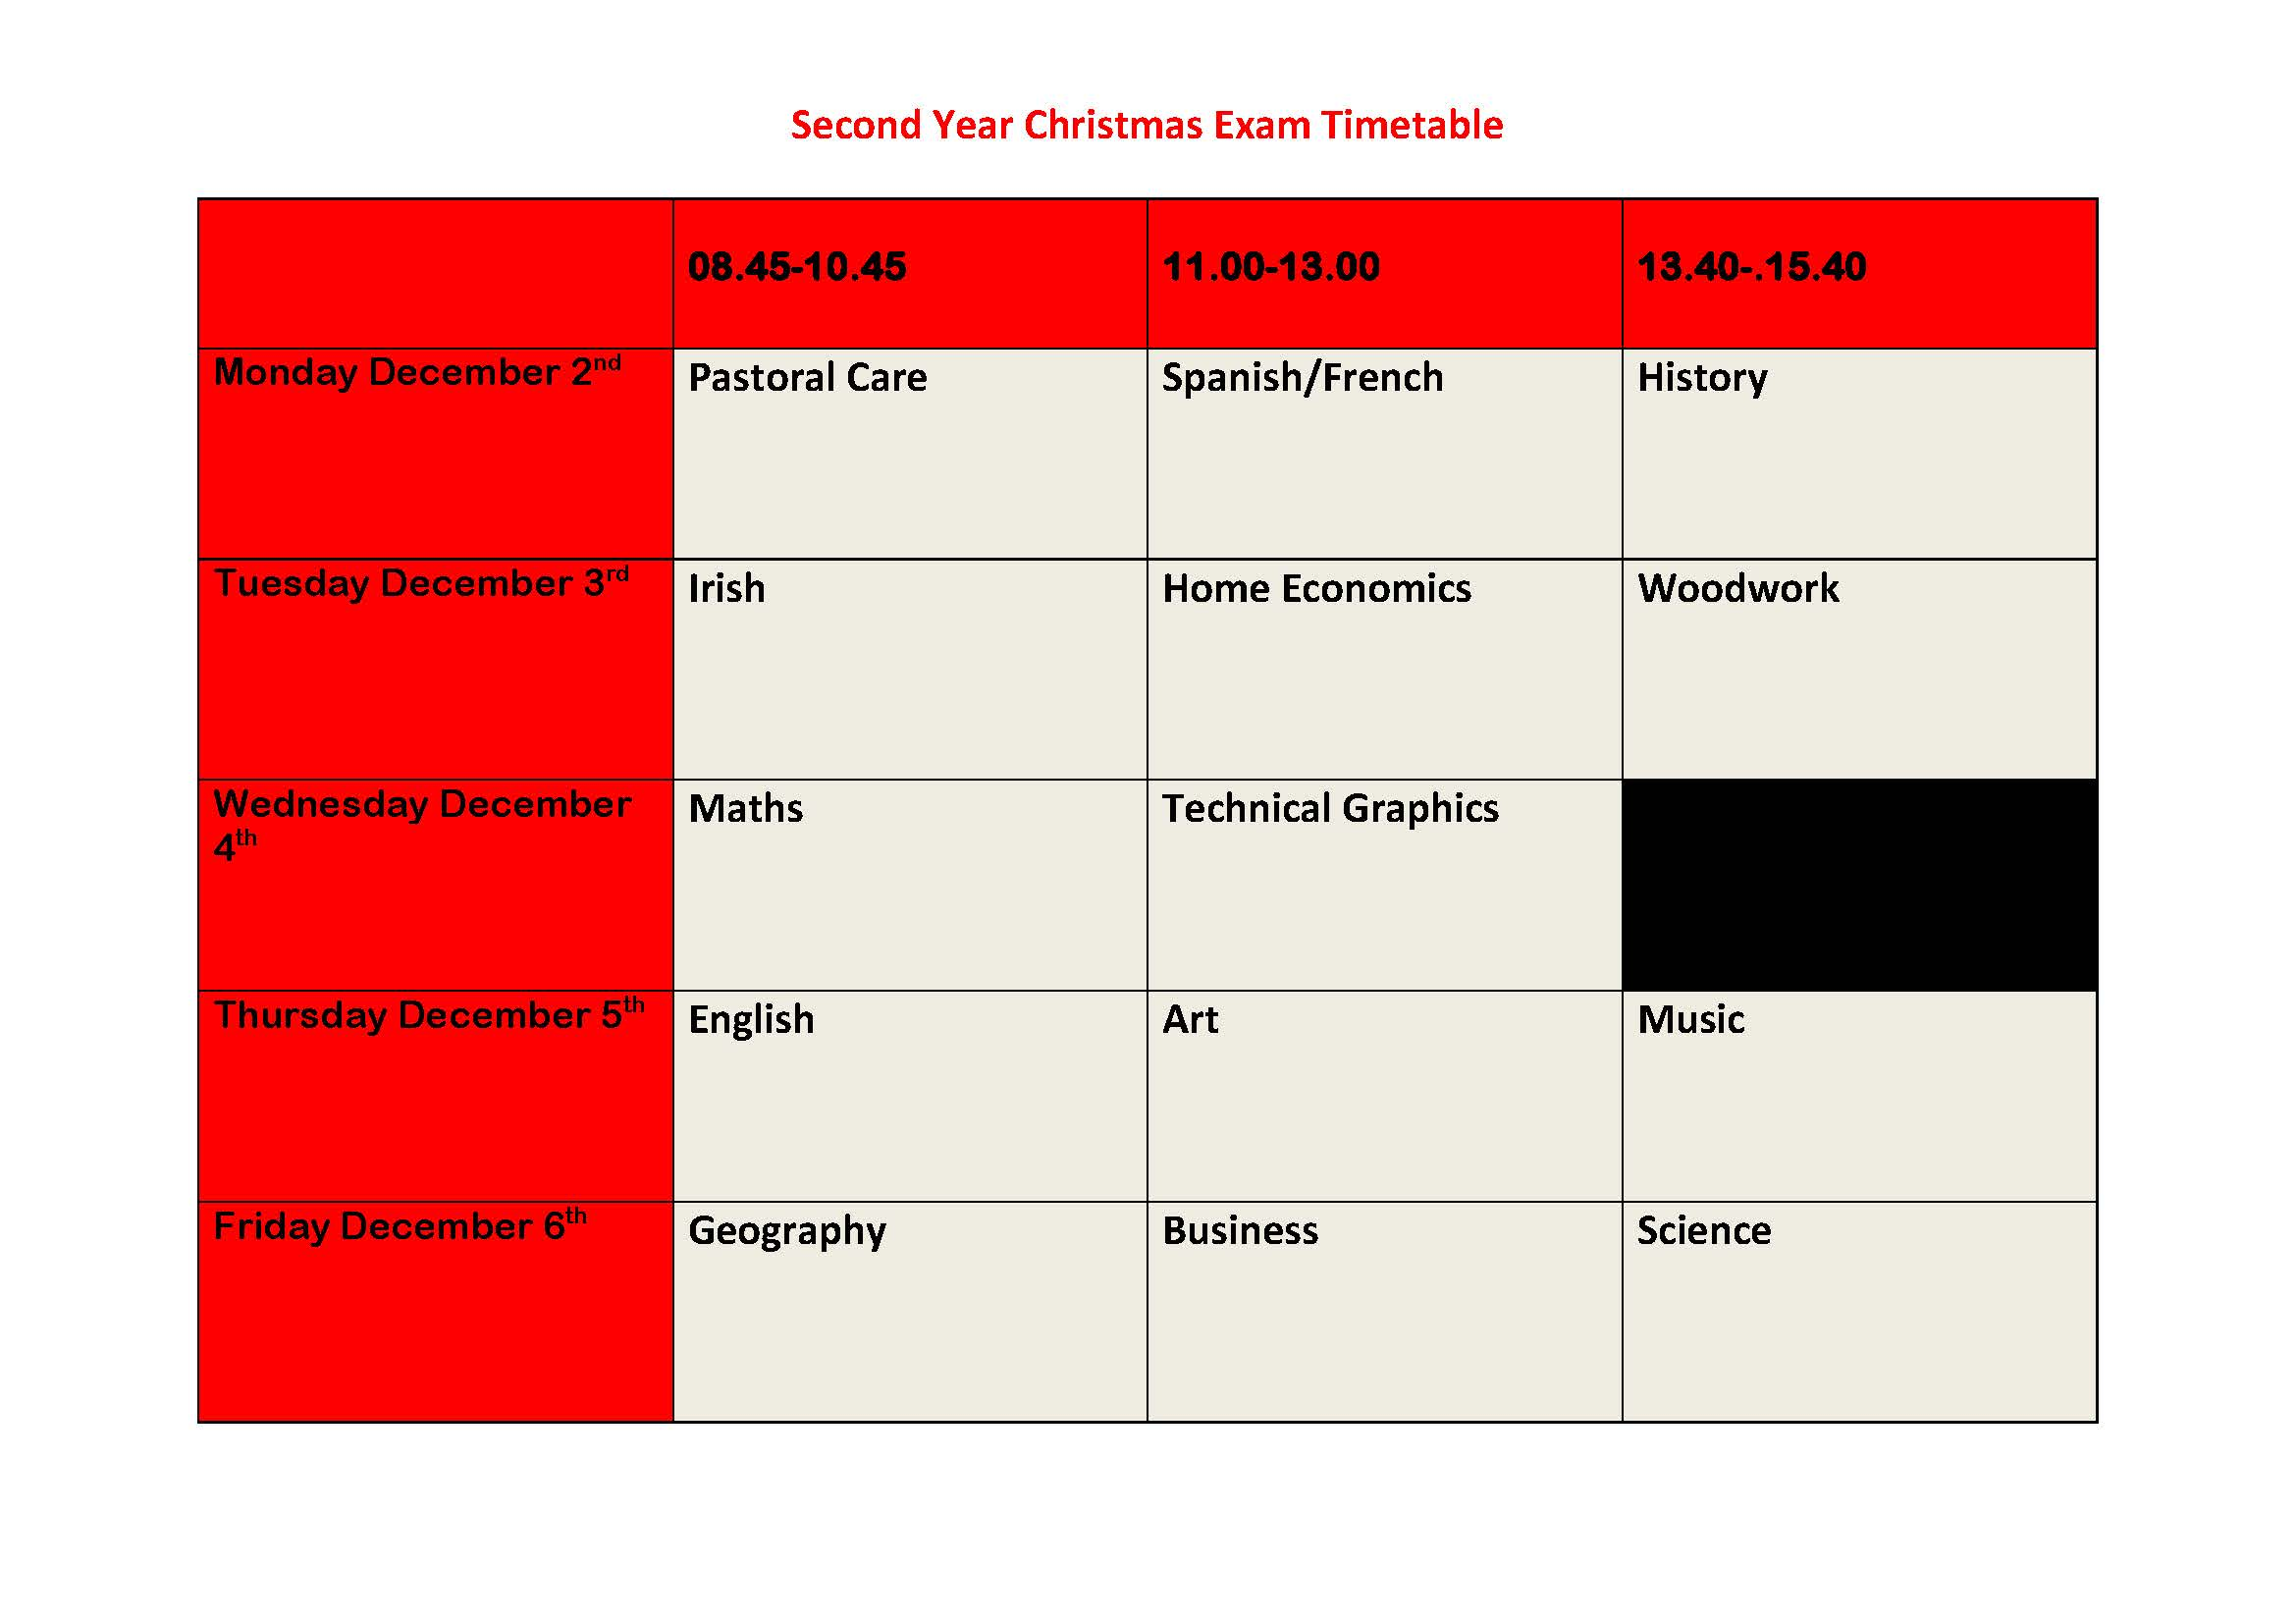 Second Year Christmas Exam Timetable